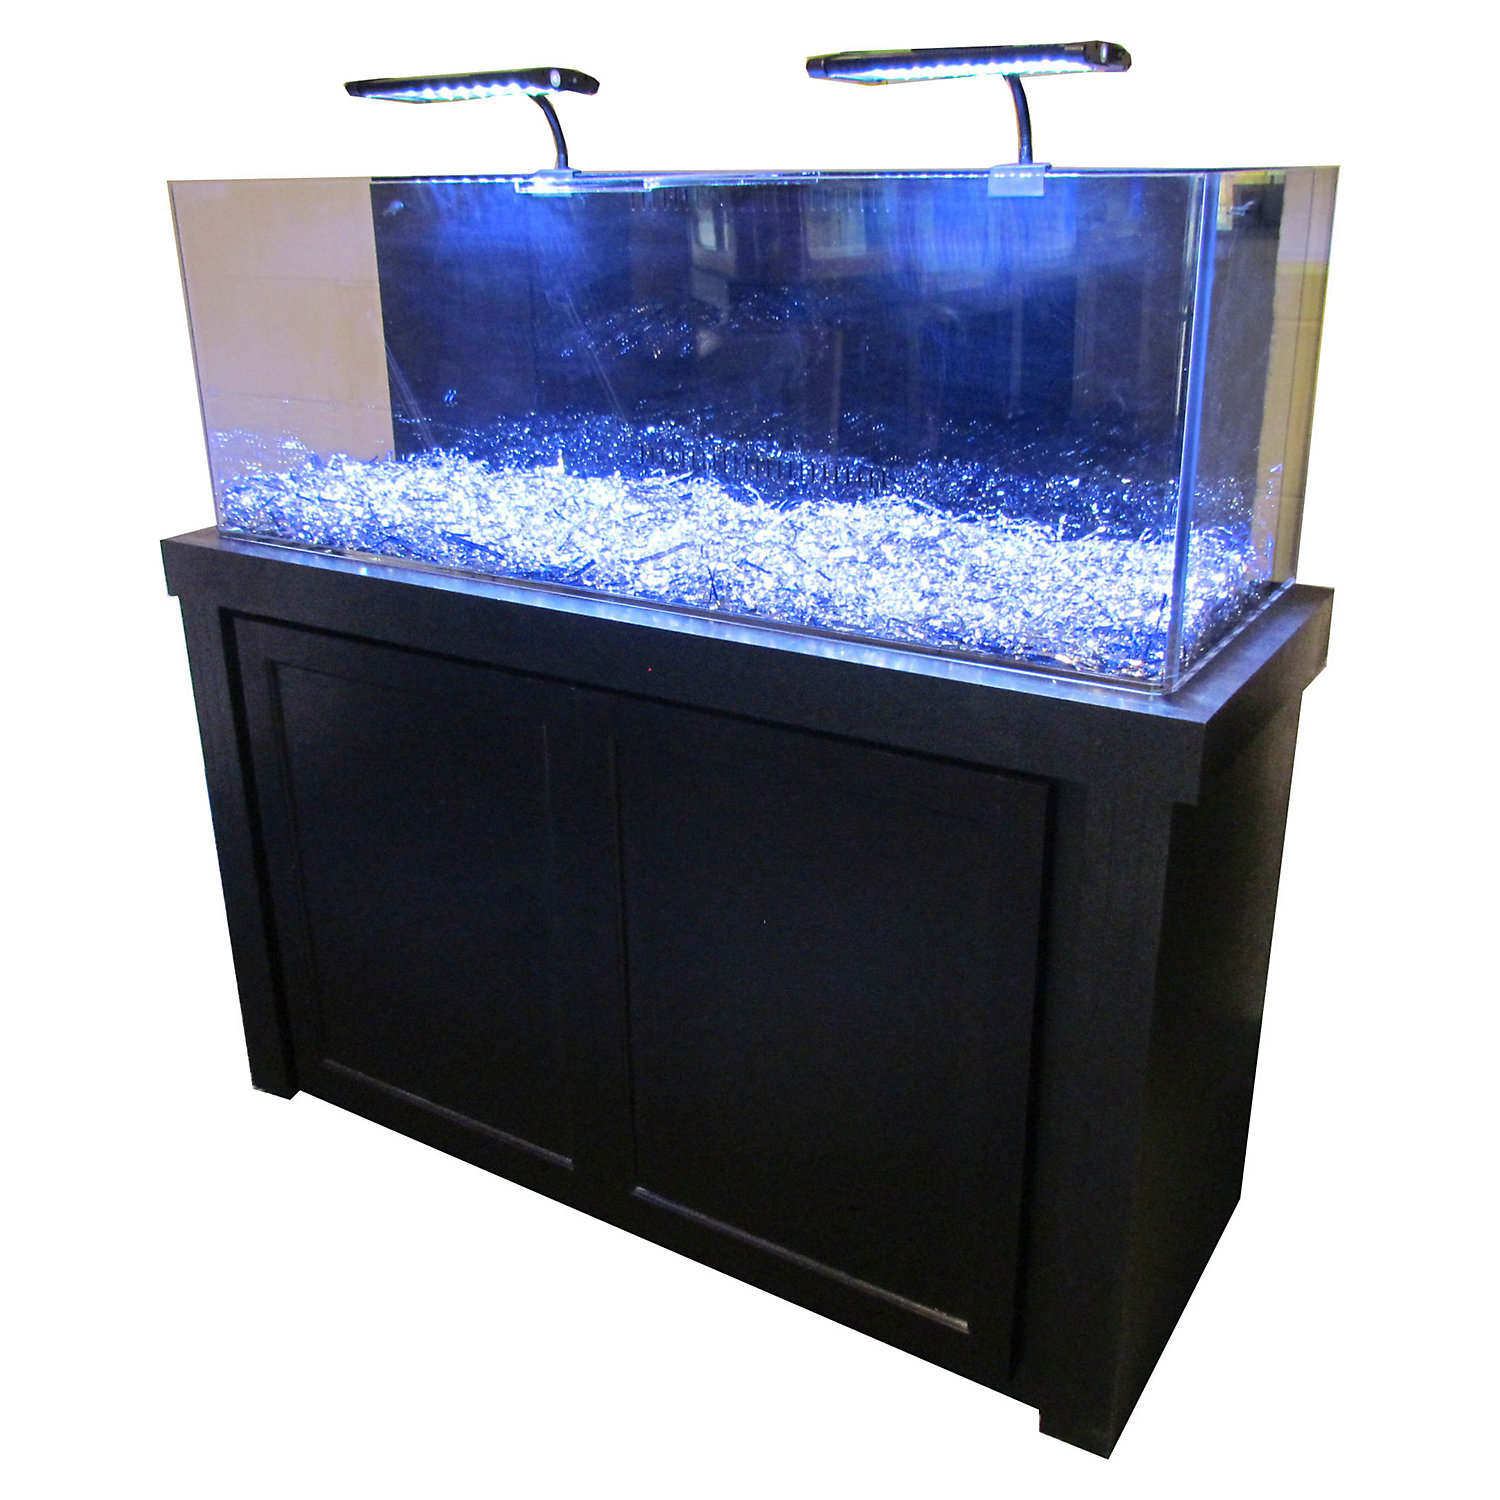 RJ Enterprises 50 Gallon Black Fusion Series Cabinet  Tank Combo 119 LB